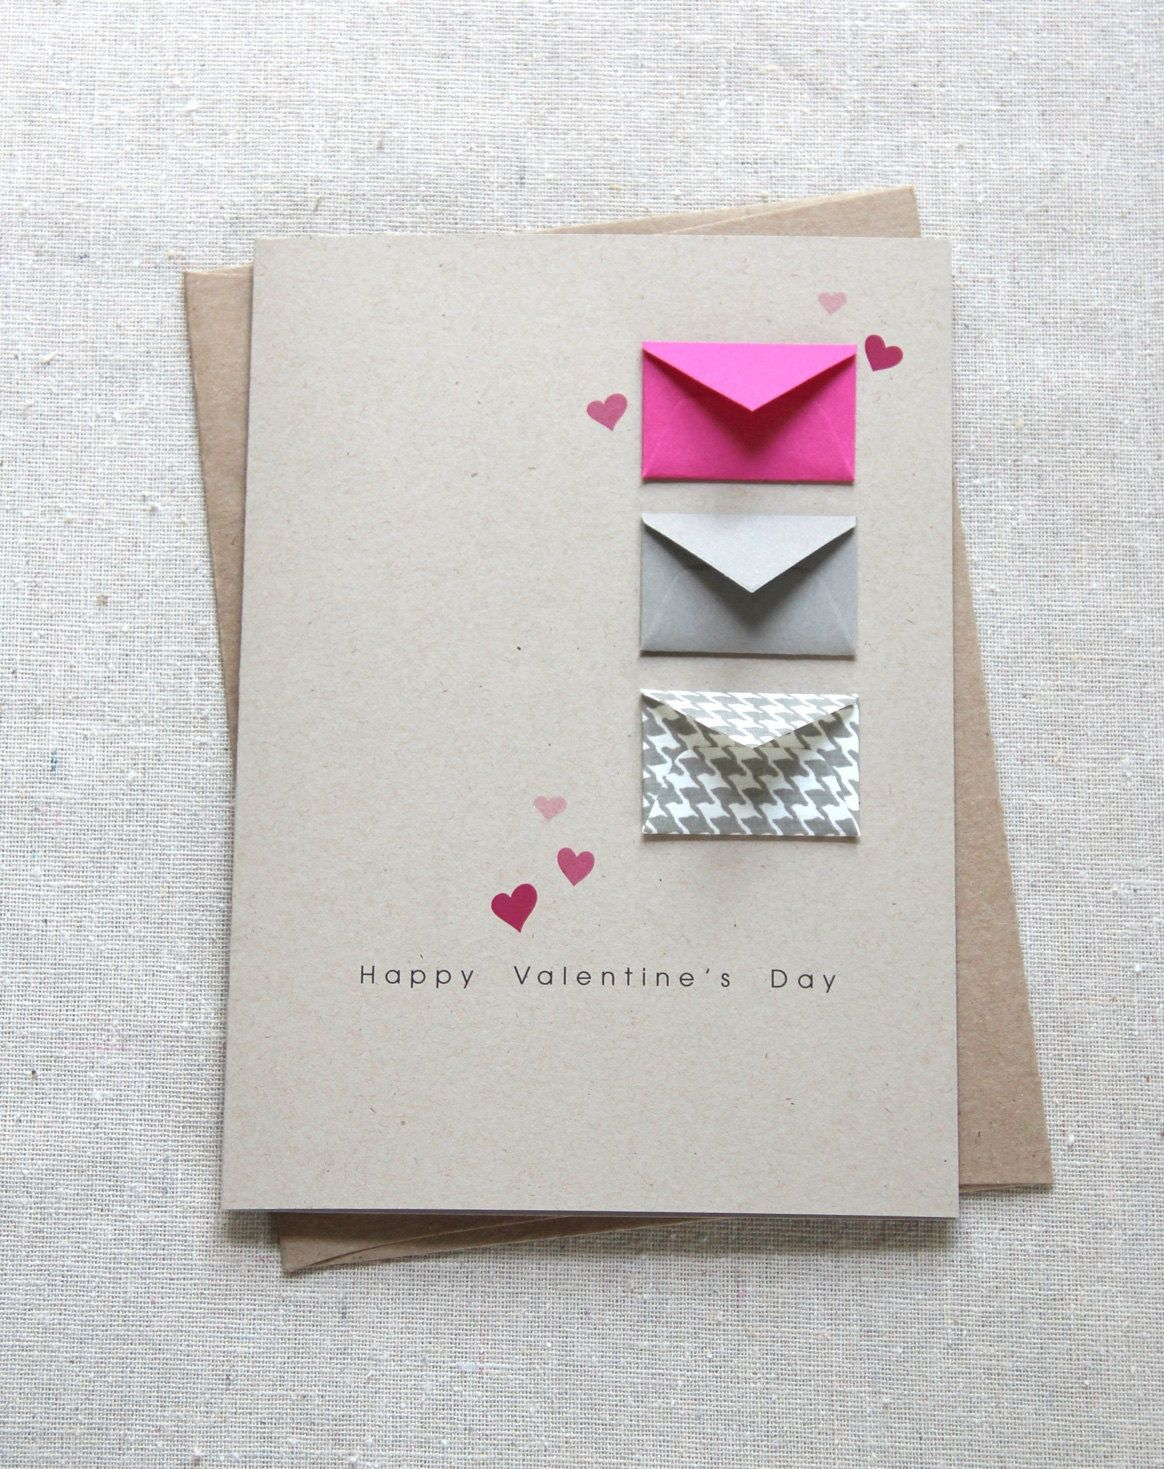 Bd9a78c92153a886c4fc7cf81783140ag 1164 1469 pixels diys valentines card tiny envelopes card with custom messagesor any occasion card like the tiny envelopes kristyandbryce Image collections